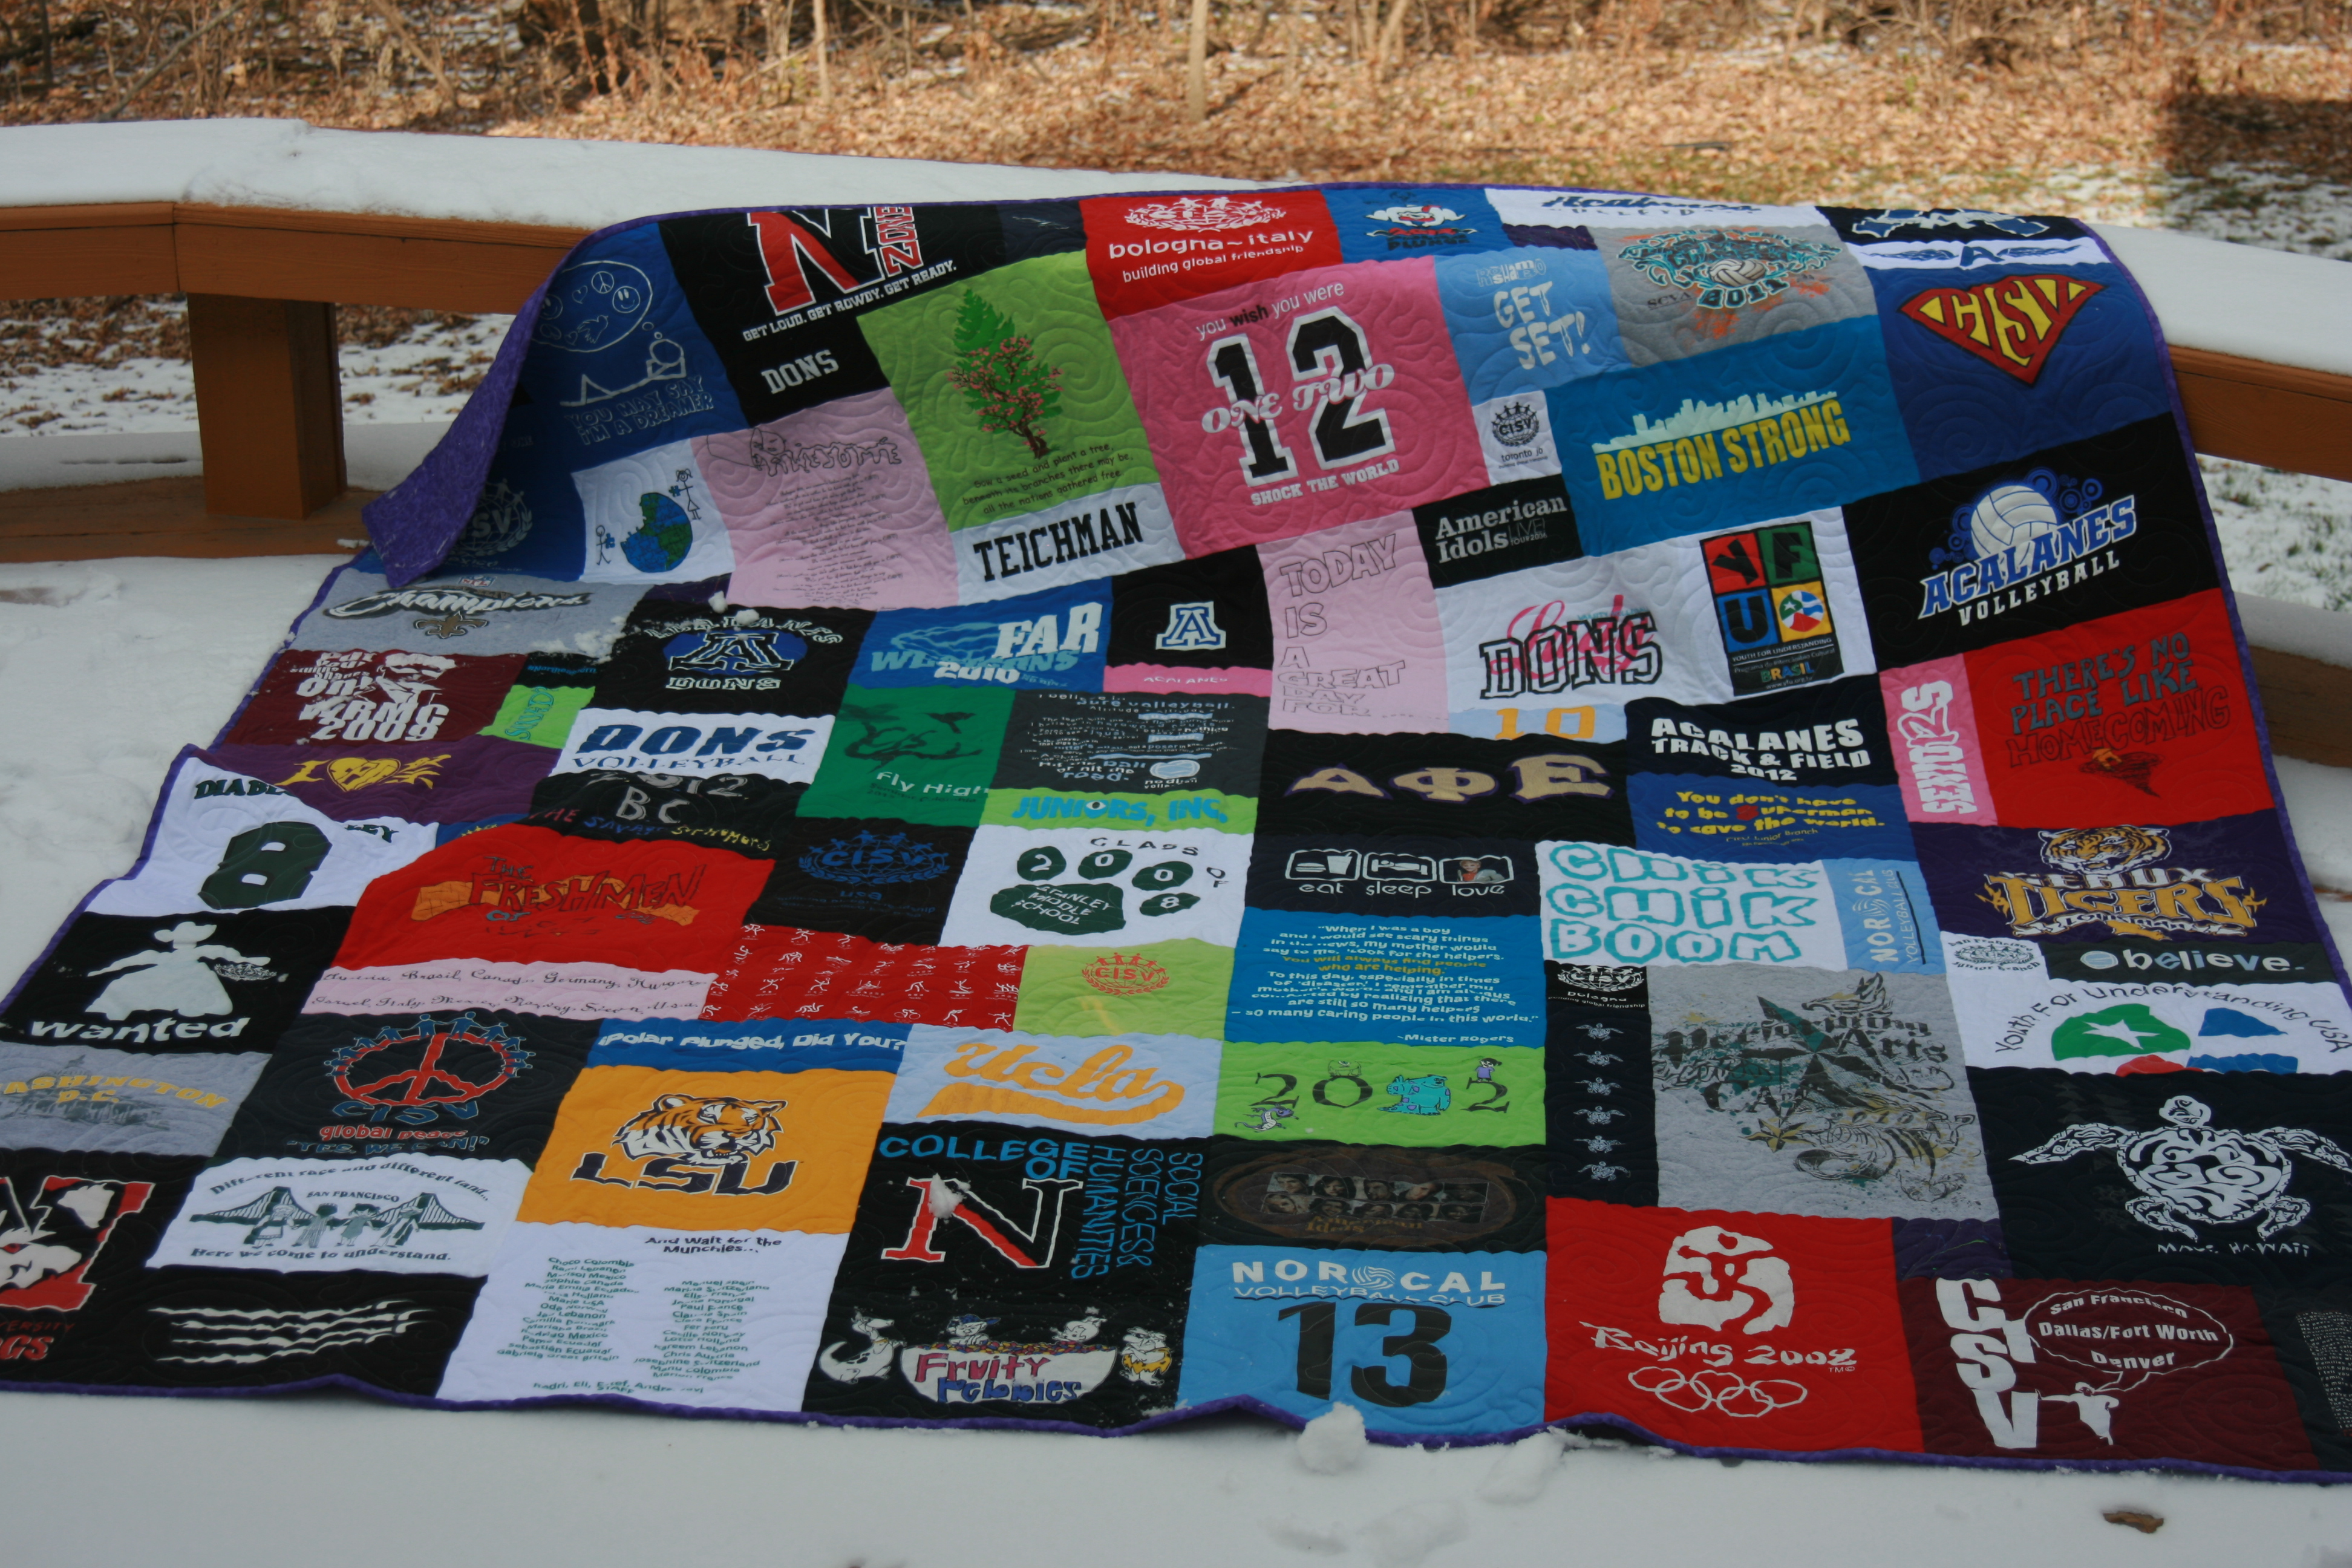 Black quilted t shirt - Tshirt Quilt Mosaic T Shirt Quilt Graduation Tshirt Quilt